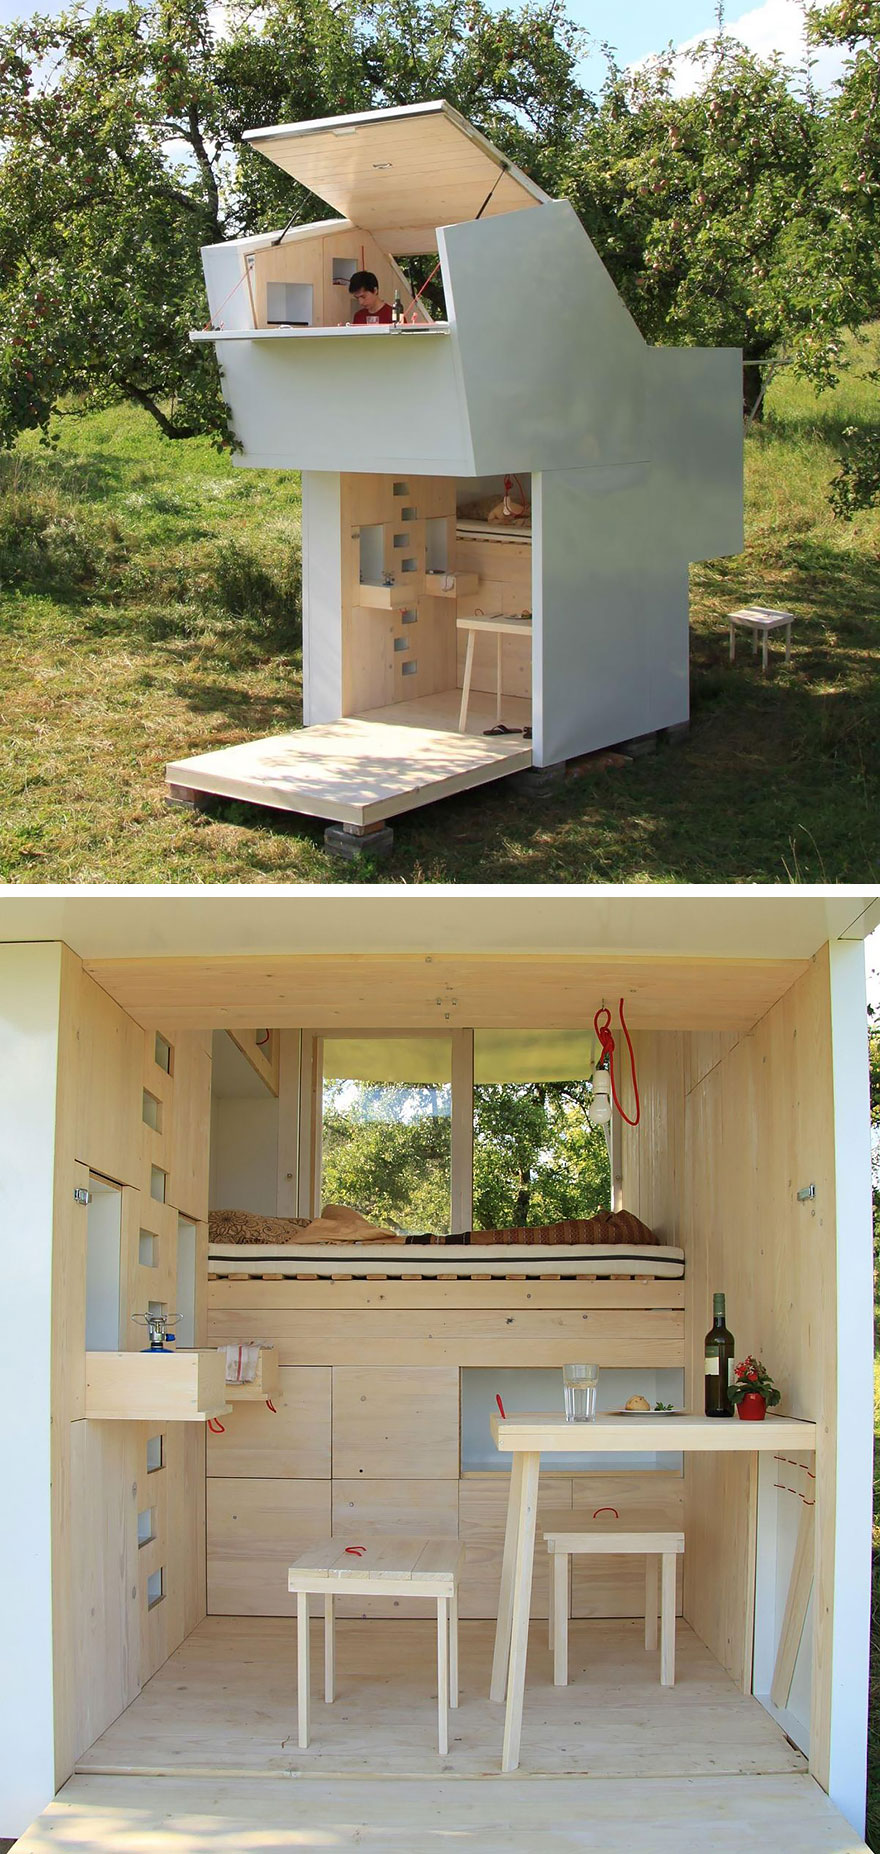 small-houses-saving-space-20__880 (1)